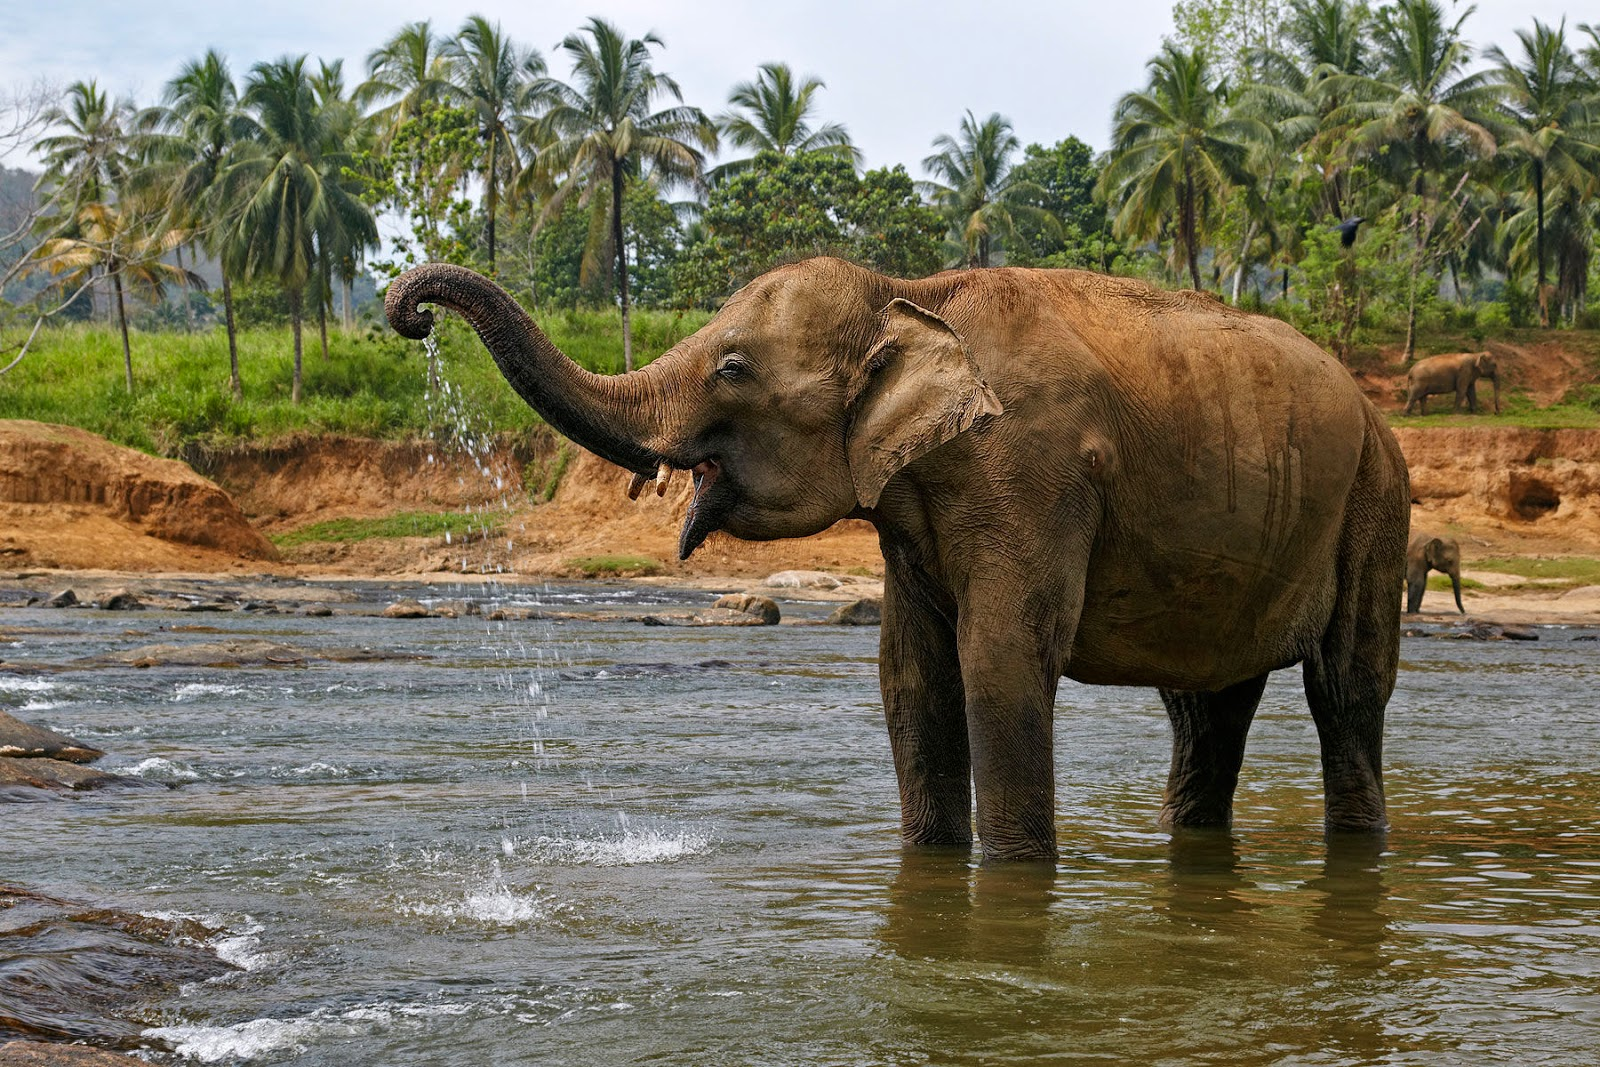 Beautiful Pictures Of Elephant In Hd: Beautiful Elephant Images HD Wallpaper